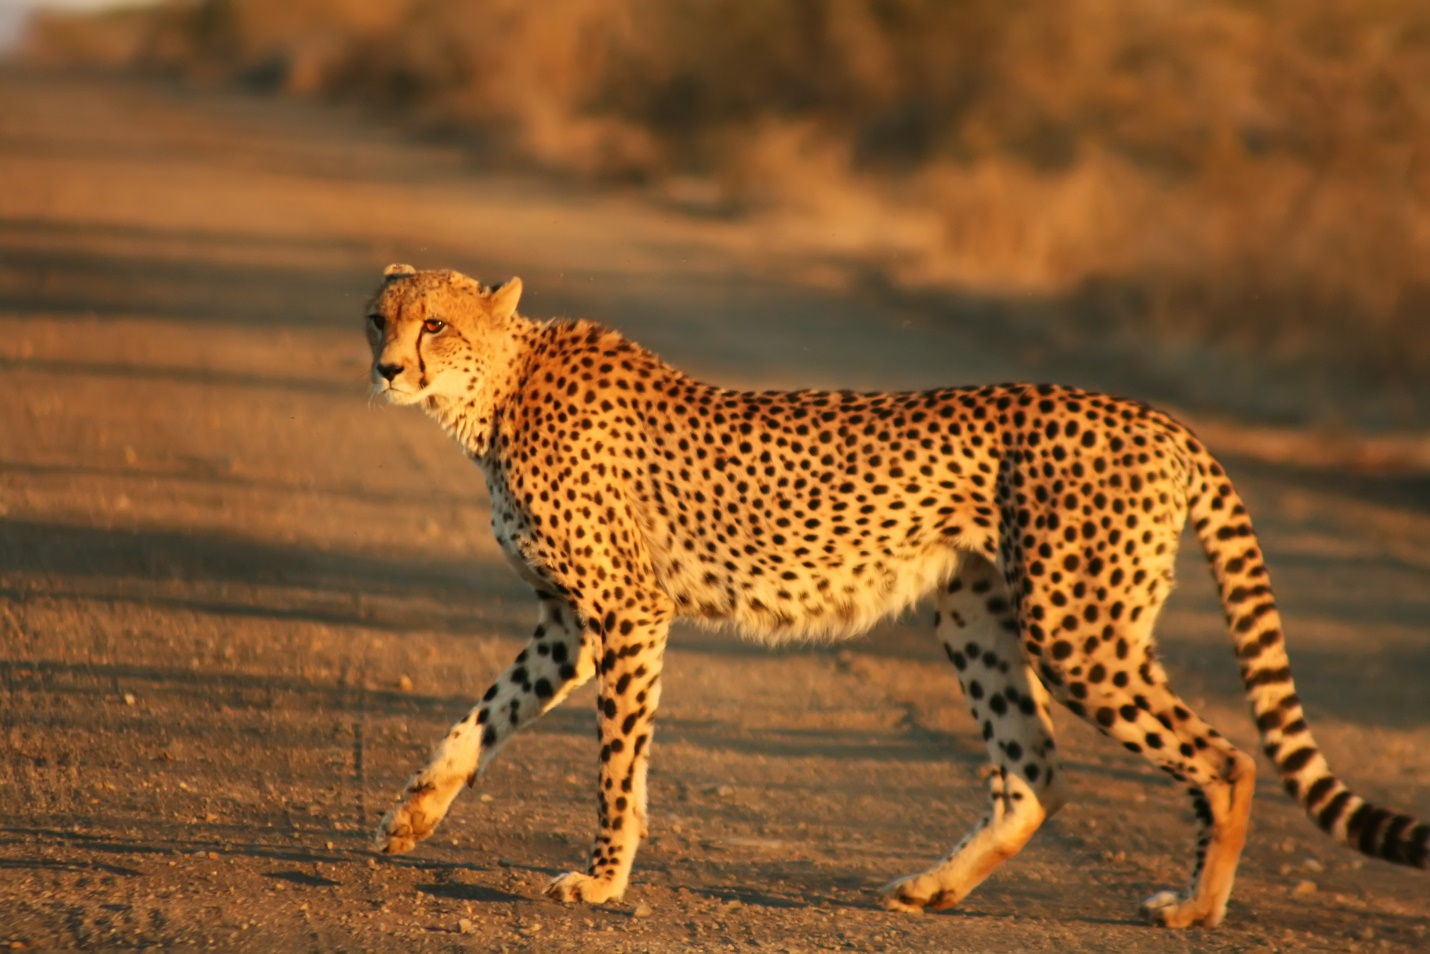 C:\Users\лд\AppData\Local\Microsoft\Windows\INetCache\Content.Word\Cheetah_Kruger.jpg